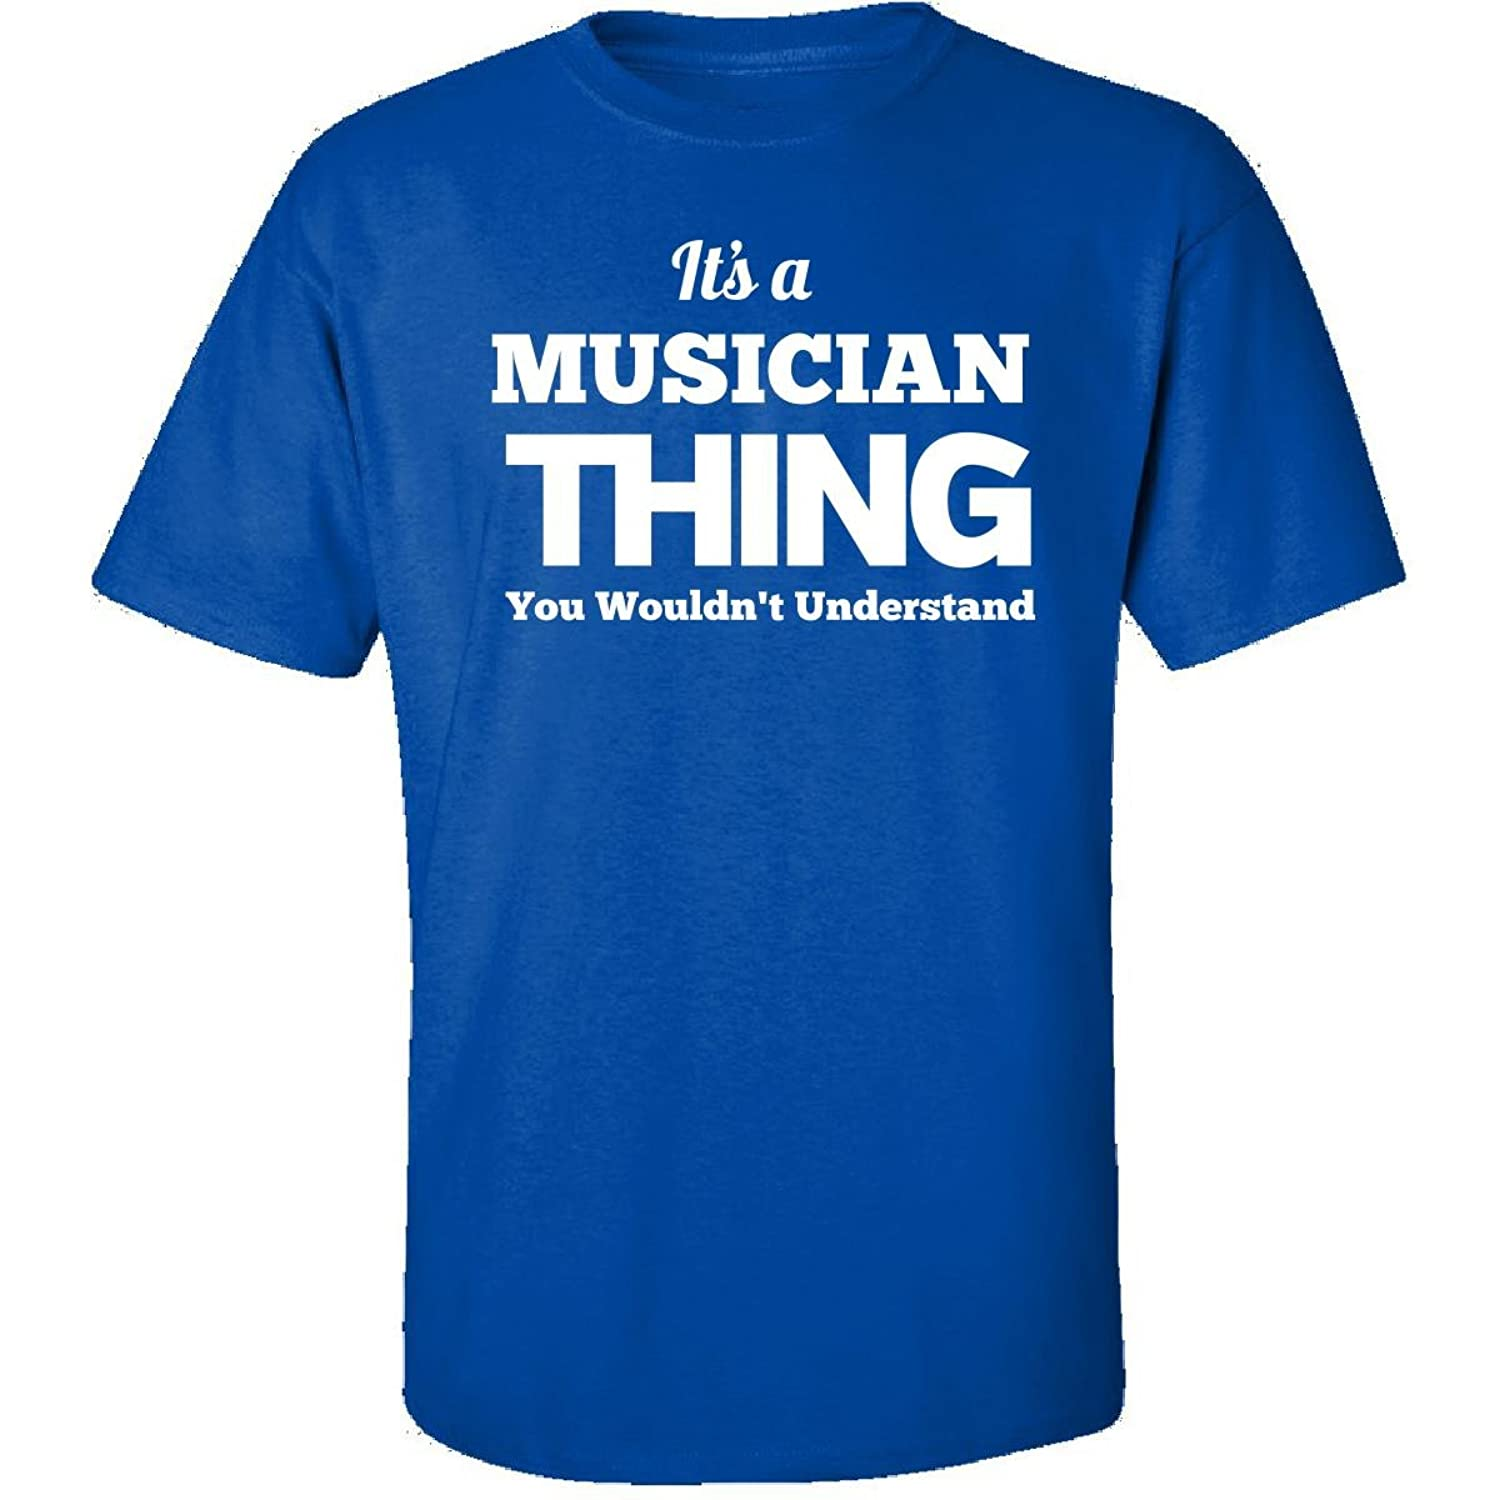 Its A Musician Thing You Wouldnt Understand - Adult Shirt